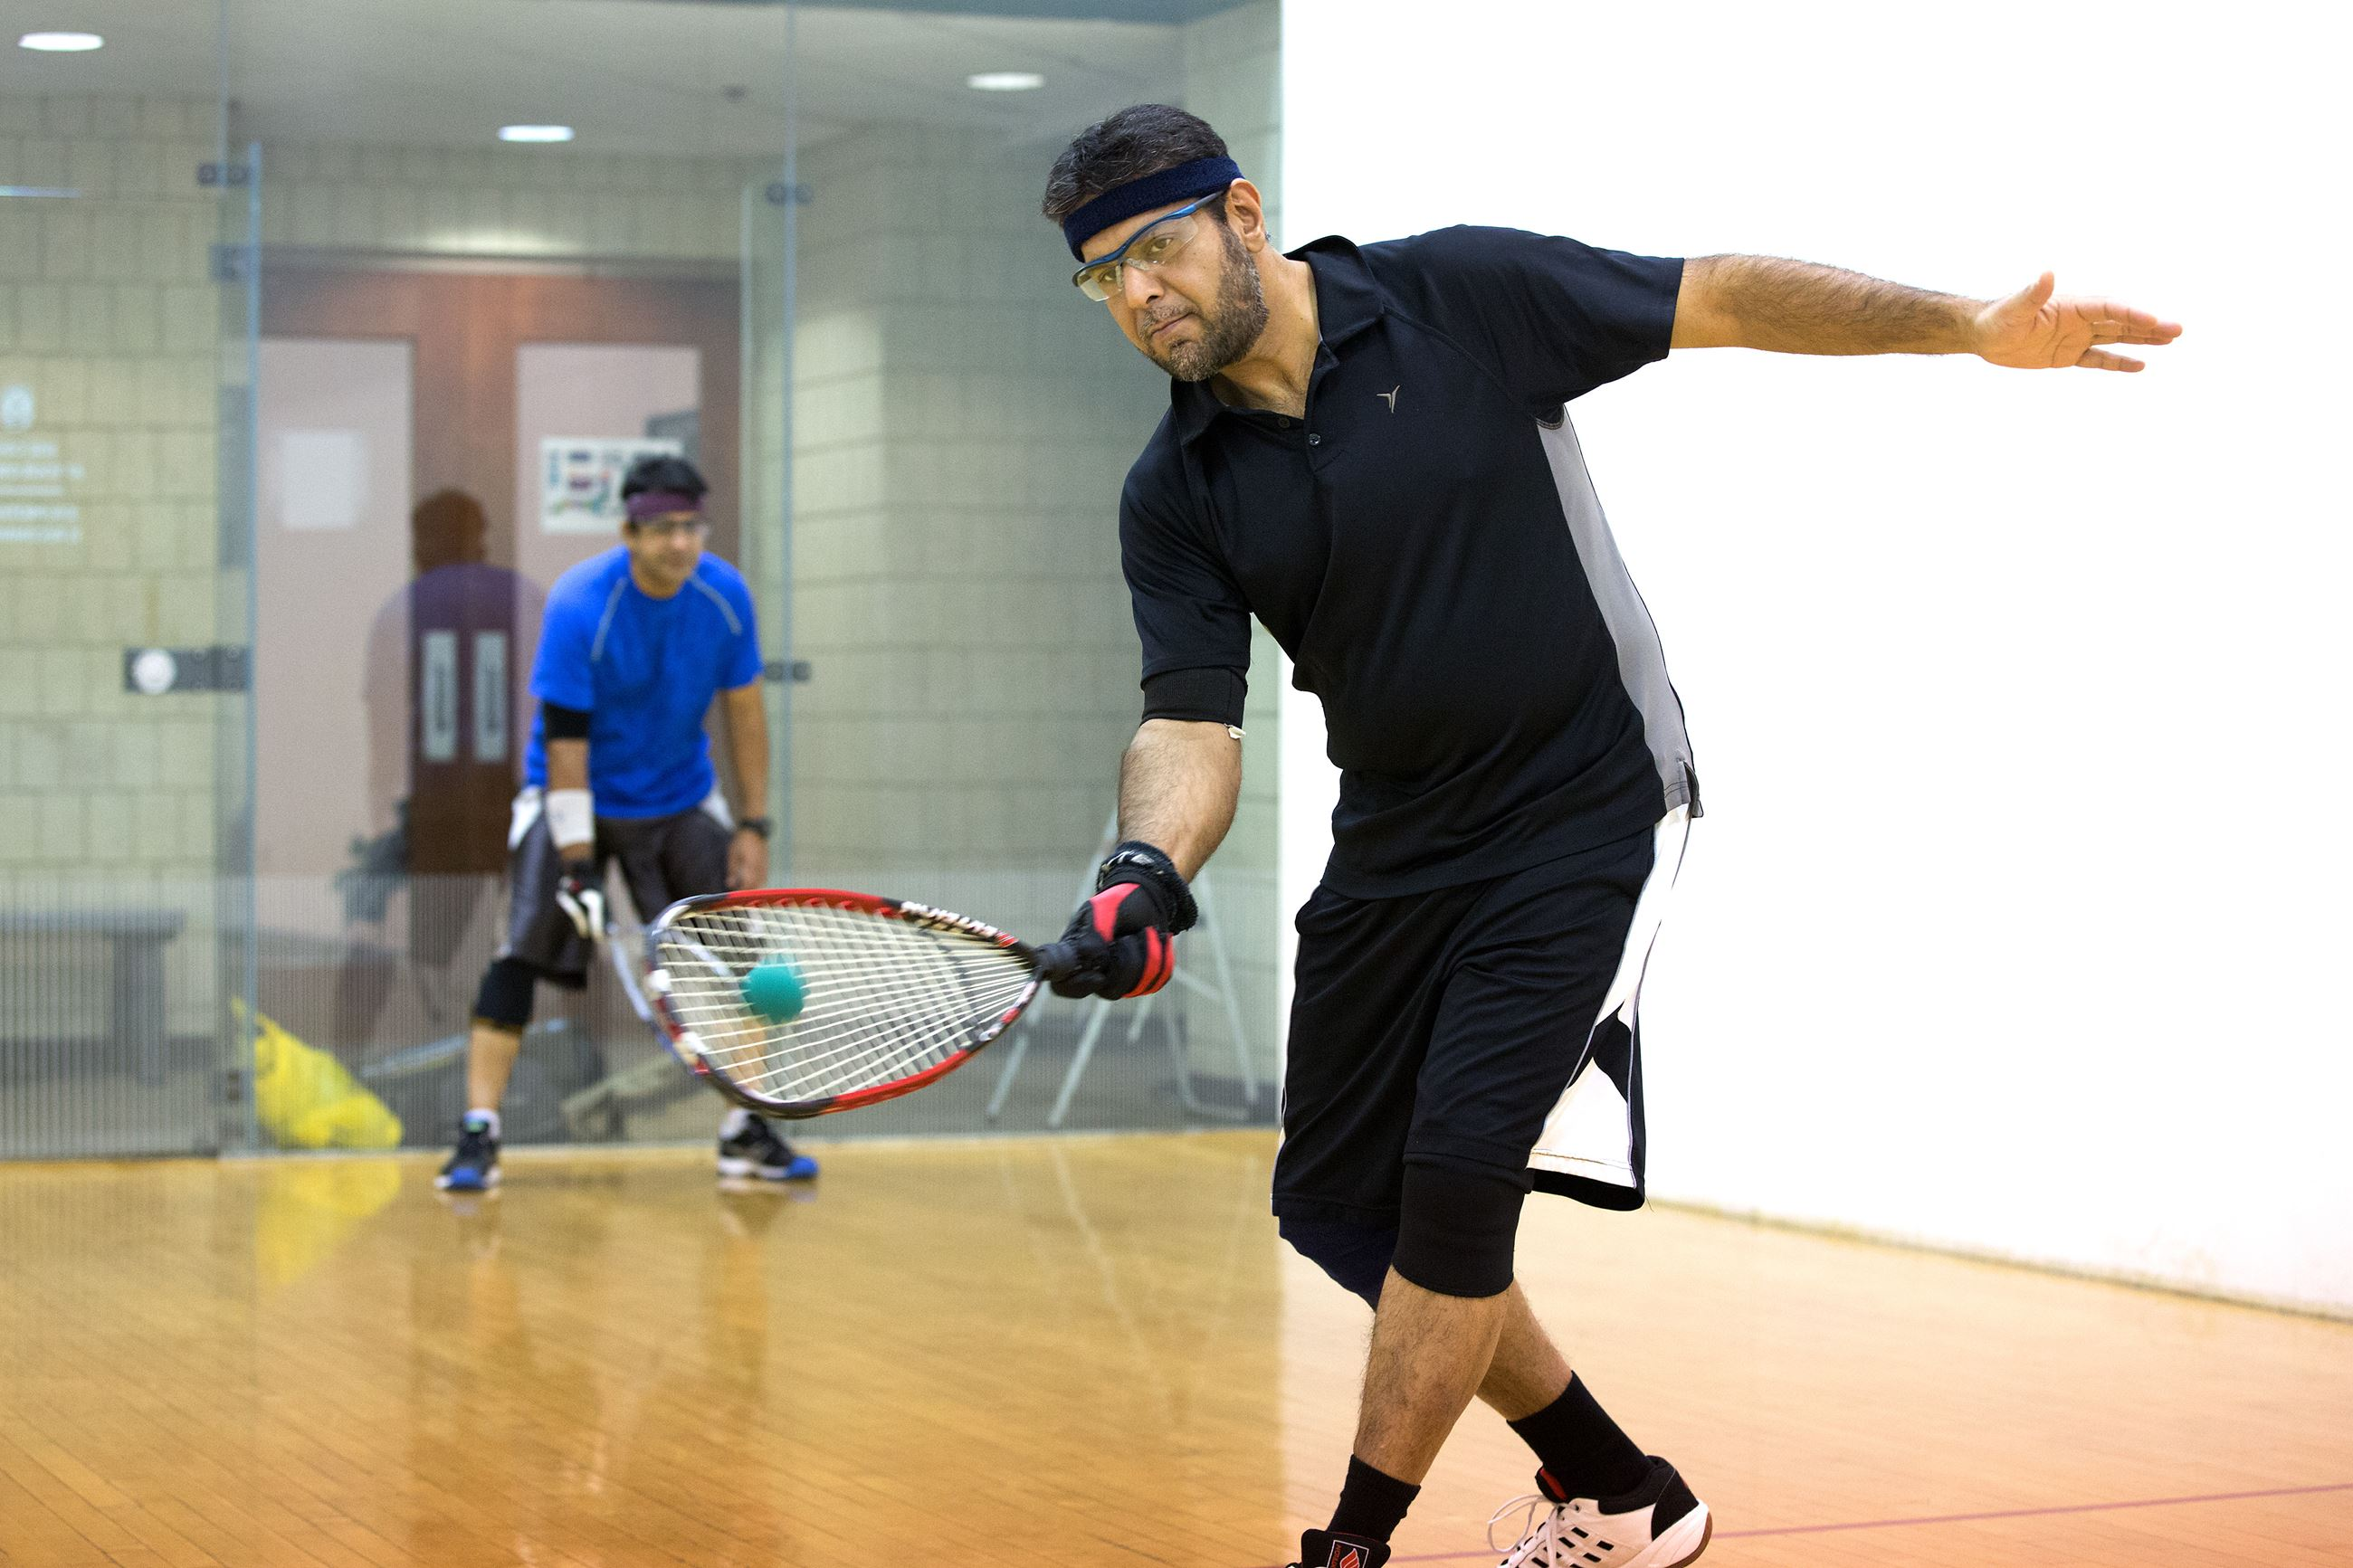 Two People on Racquetball Court